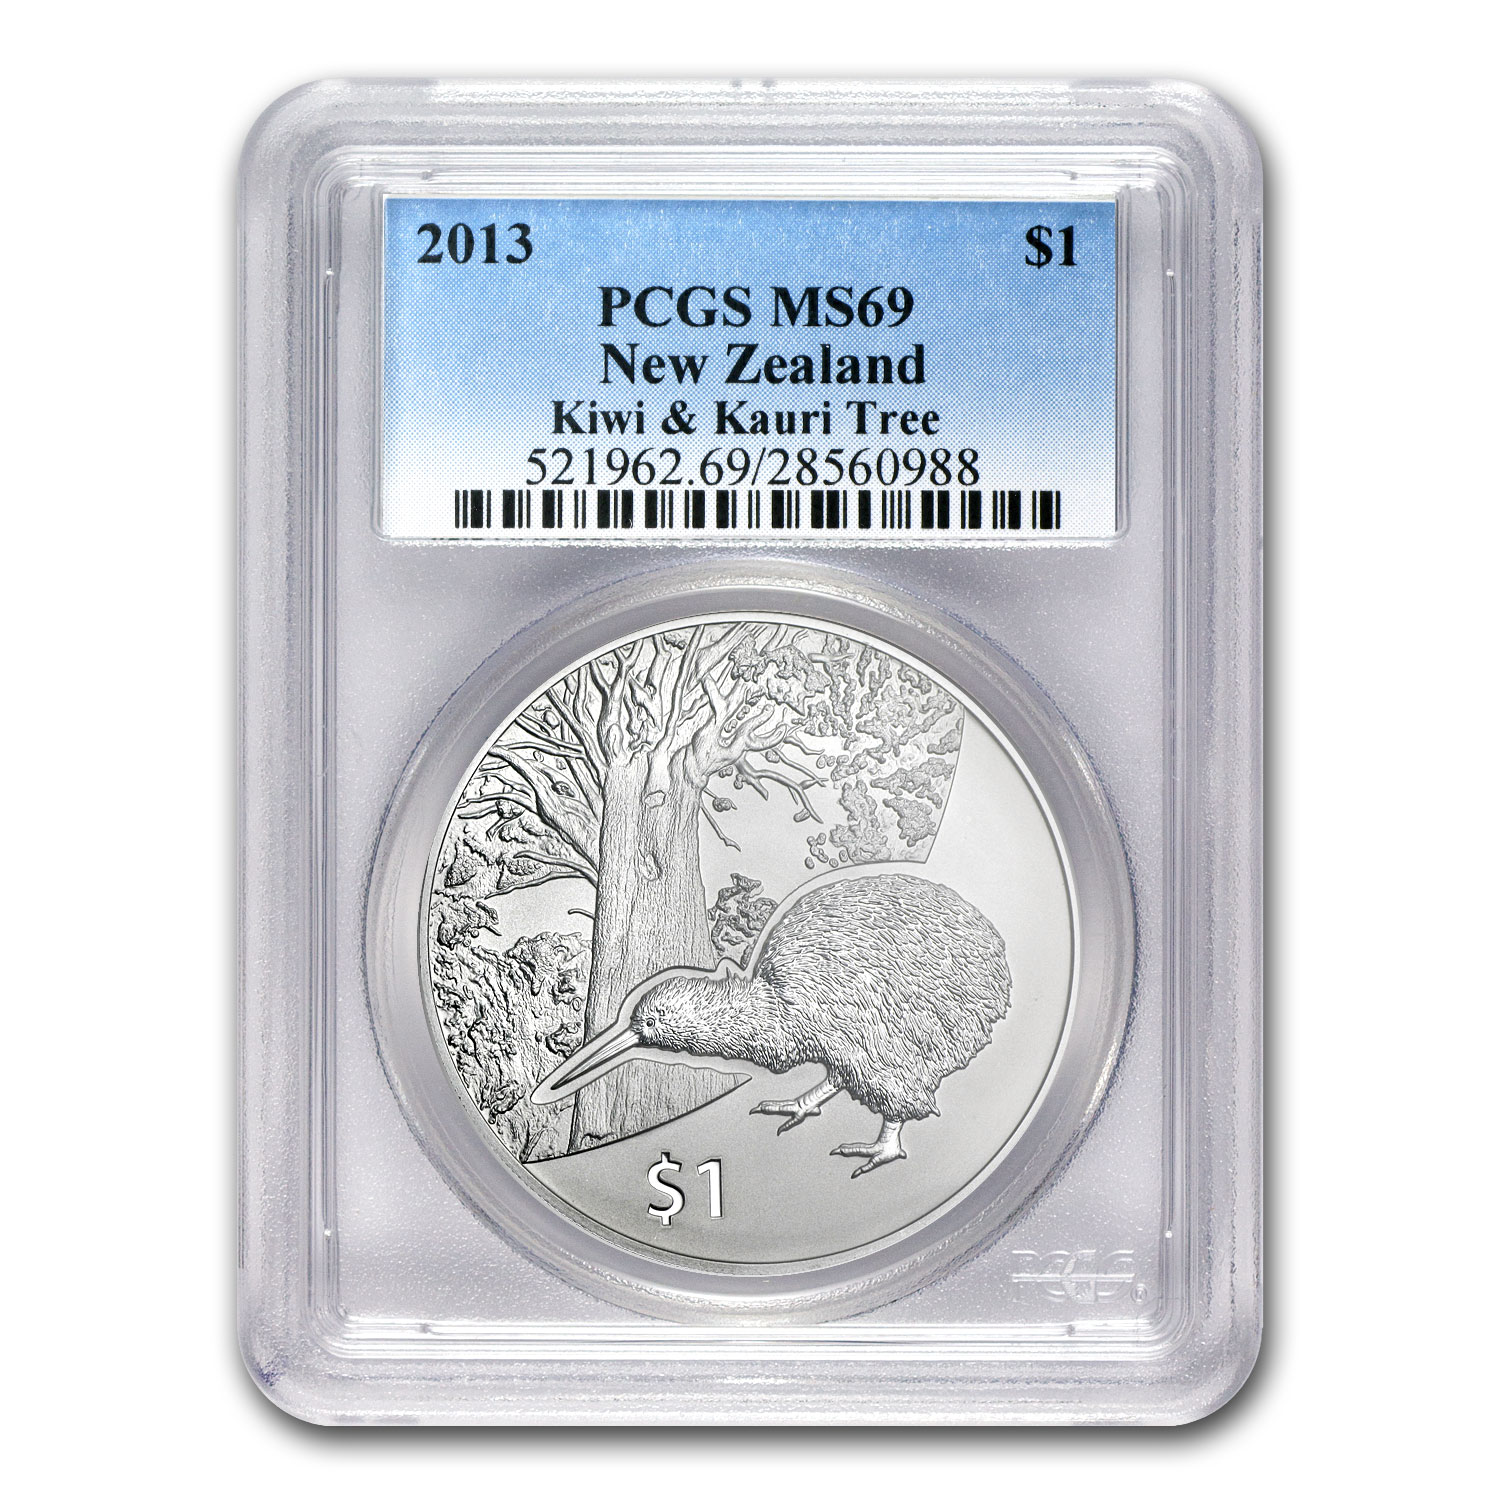 2013 1 oz Silver New Zealand Treasures $1 Kiwi MS-69 PCGS